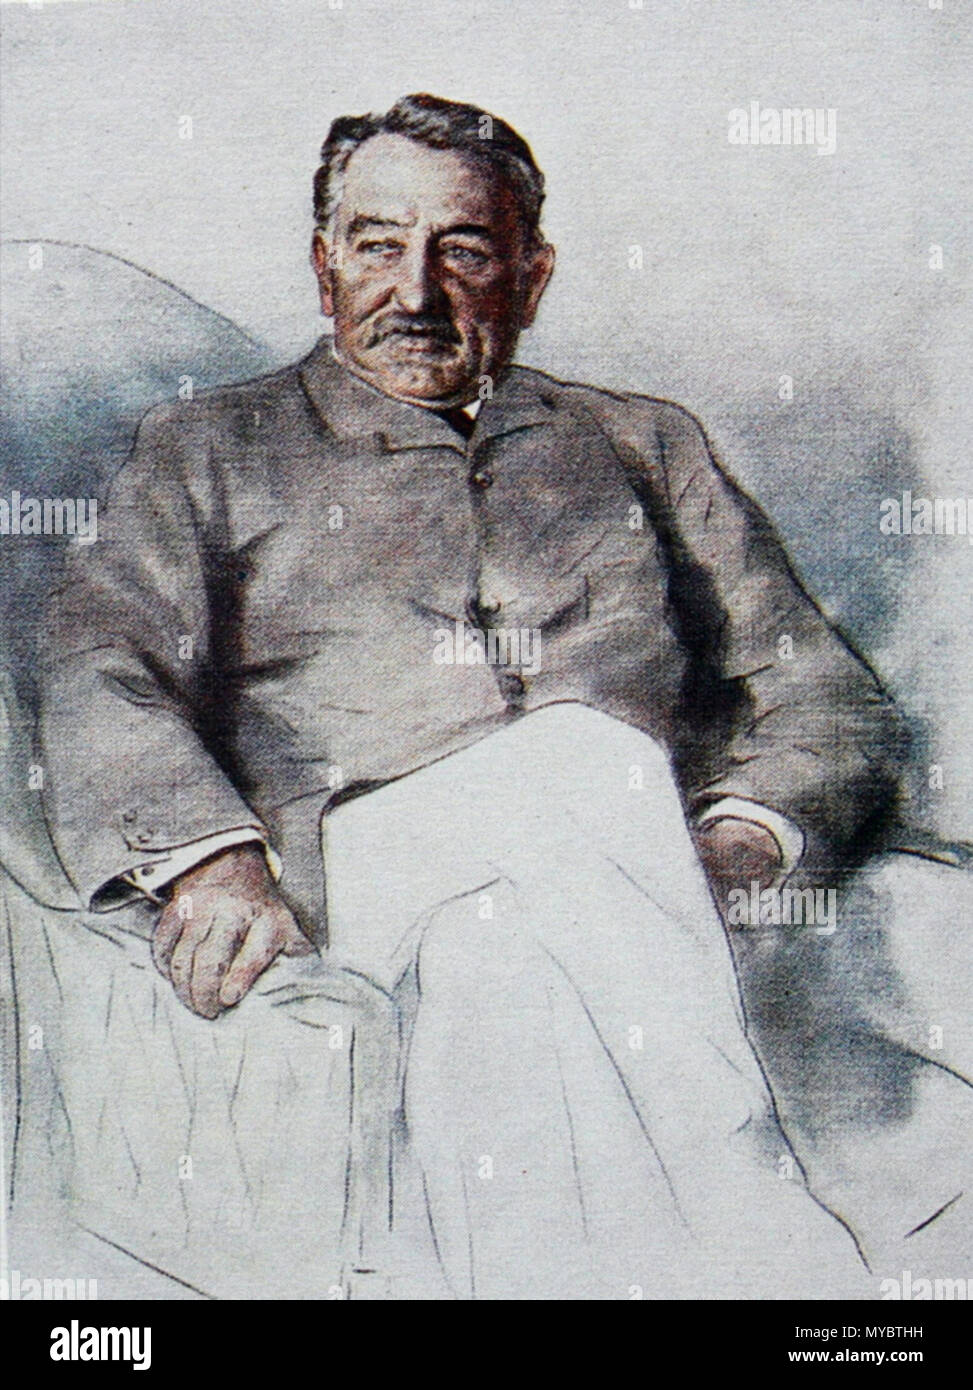 . Cecil John Rhodes 1853-1902 South African mining magnate and politician 103 Cecil john rhodes00 - Stock Image